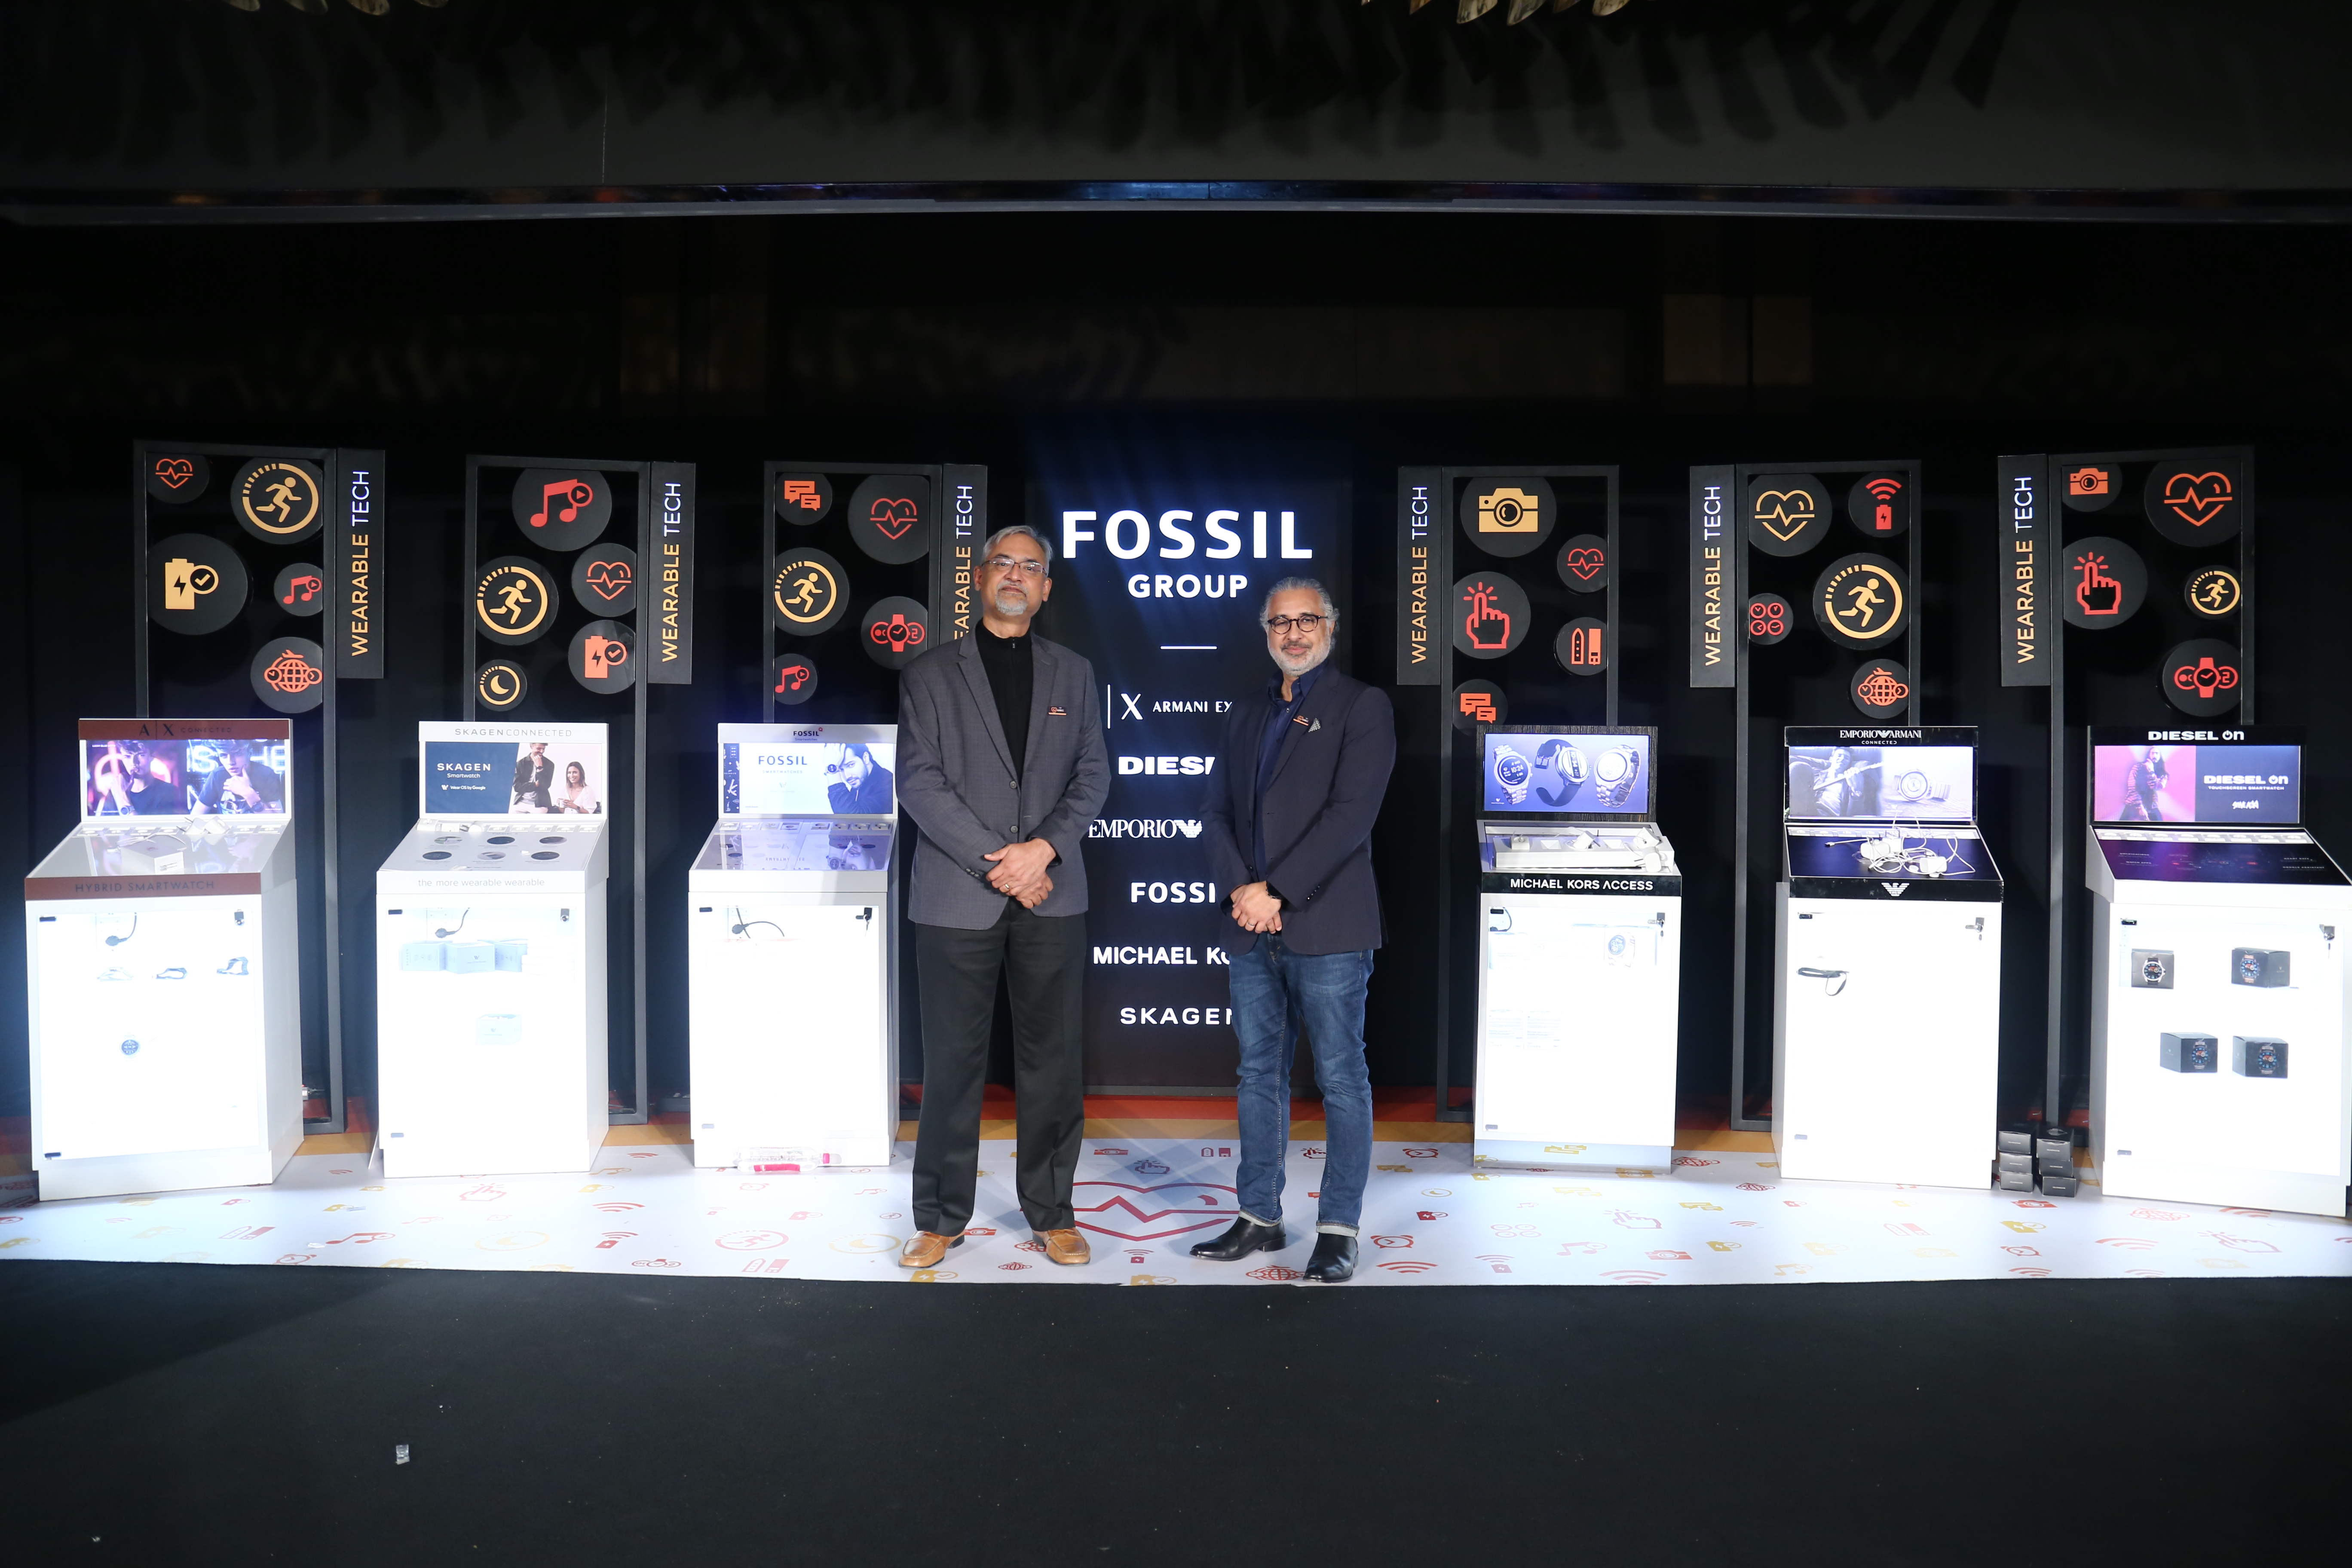 Fossil Group unveils its Next Generation of Smartwatches